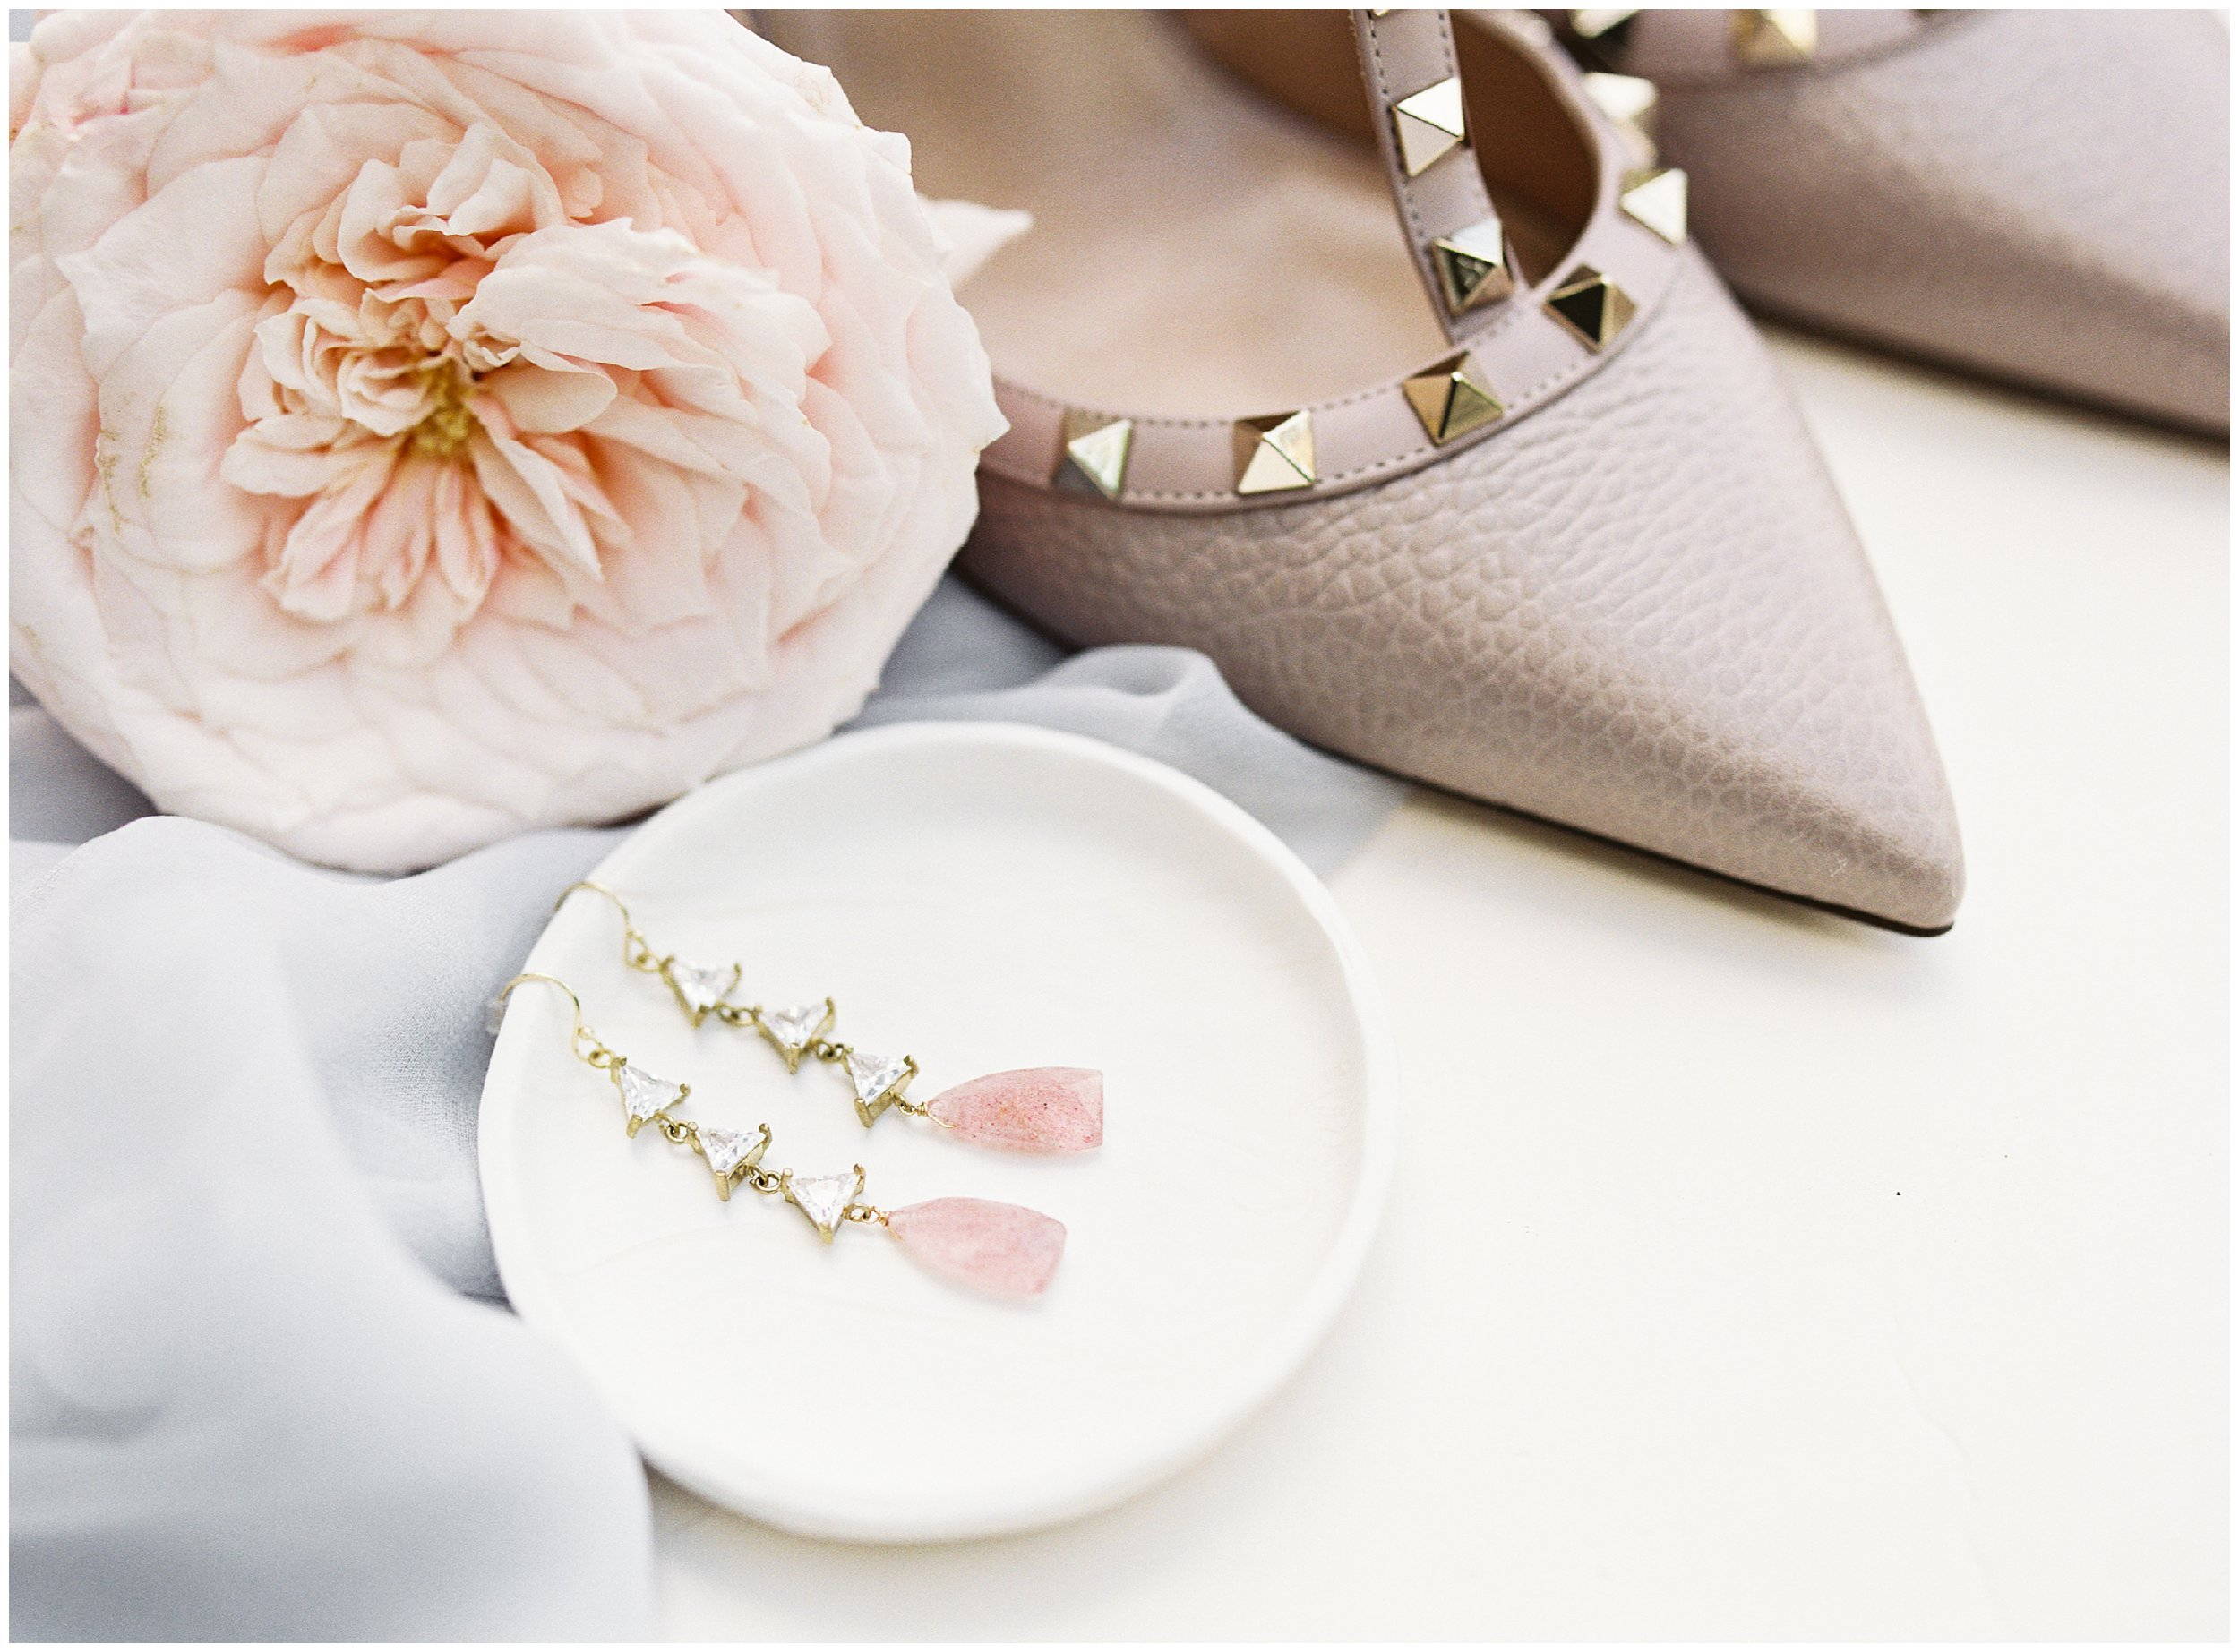 wedding details, valentino shoes and pink crystal earrings